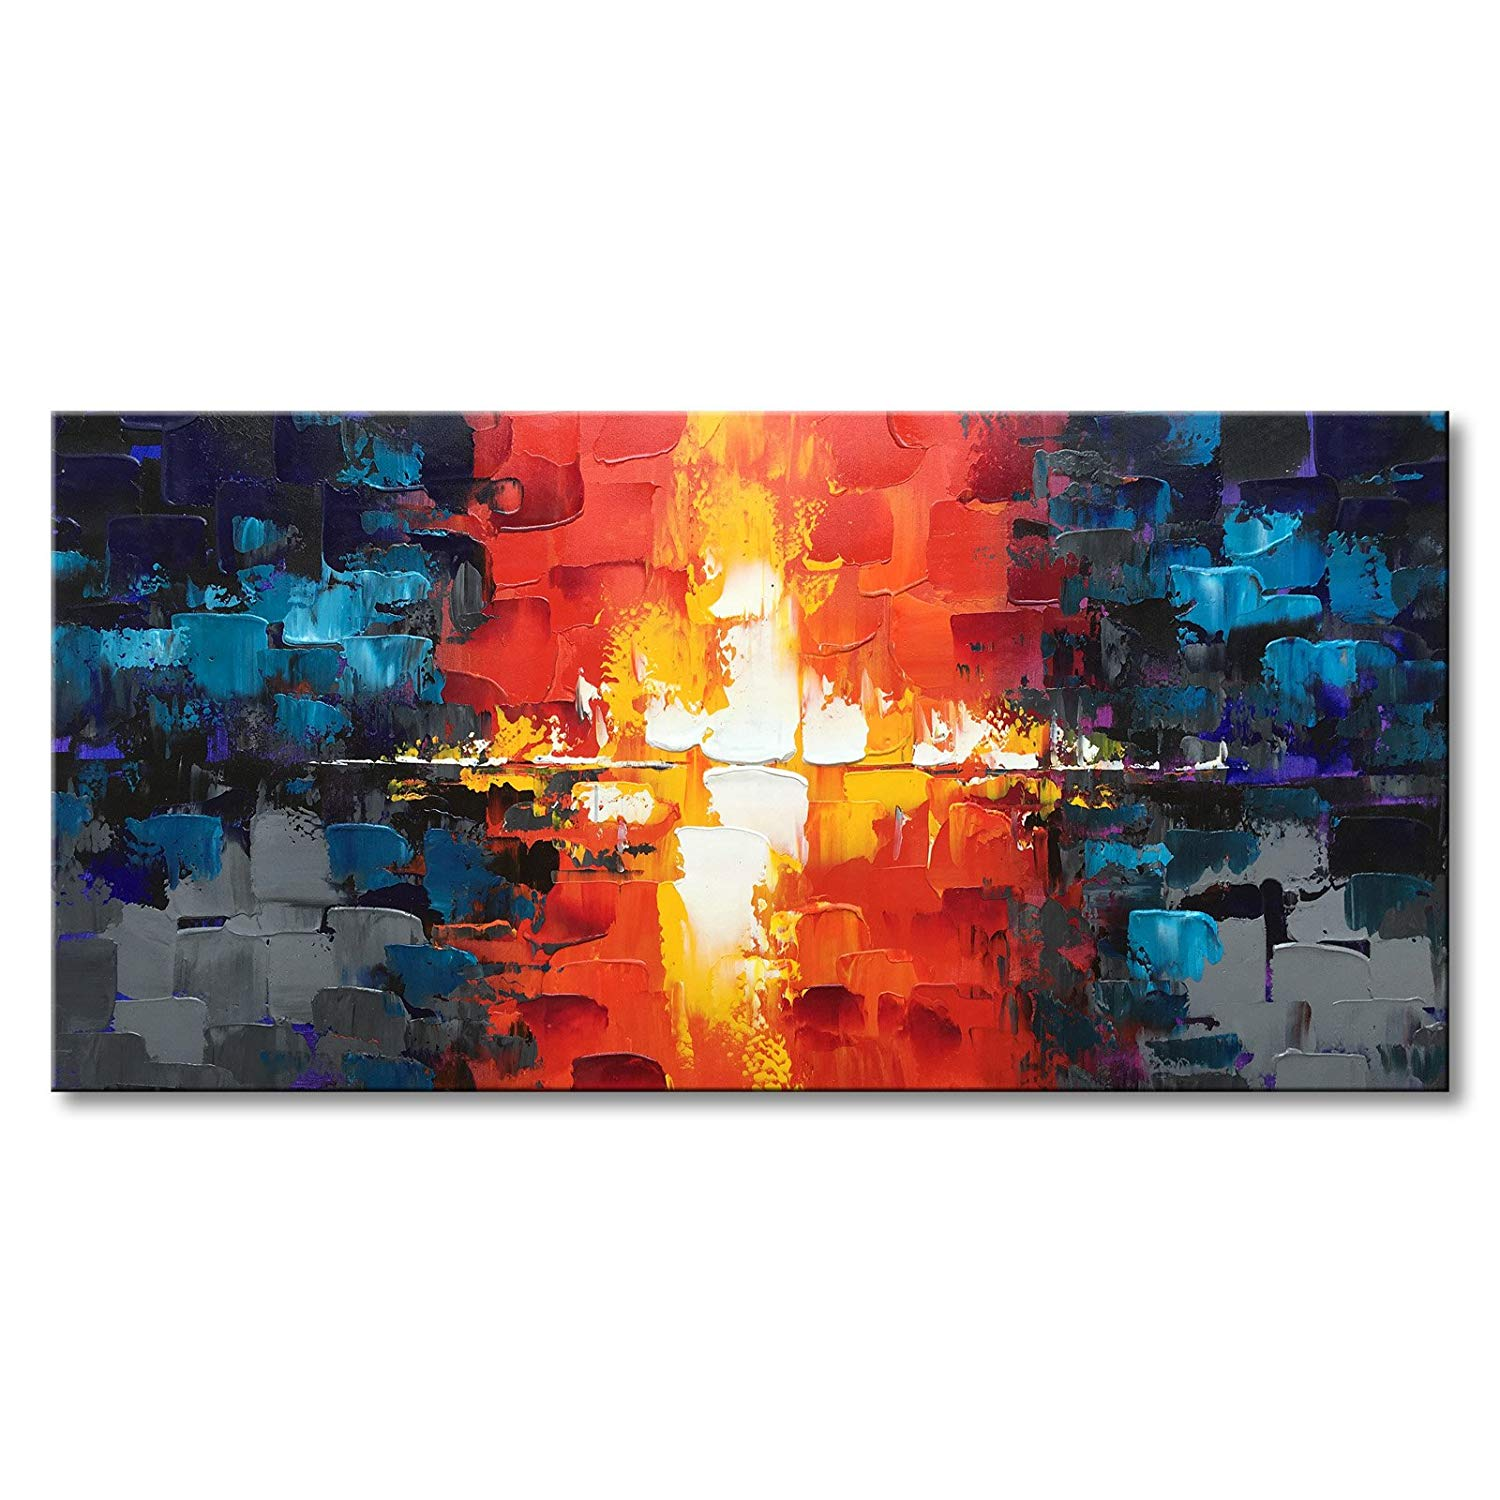 Textured Abstract Wall Art Hand Painted Modern Oil Painting on Canvas for Living Room